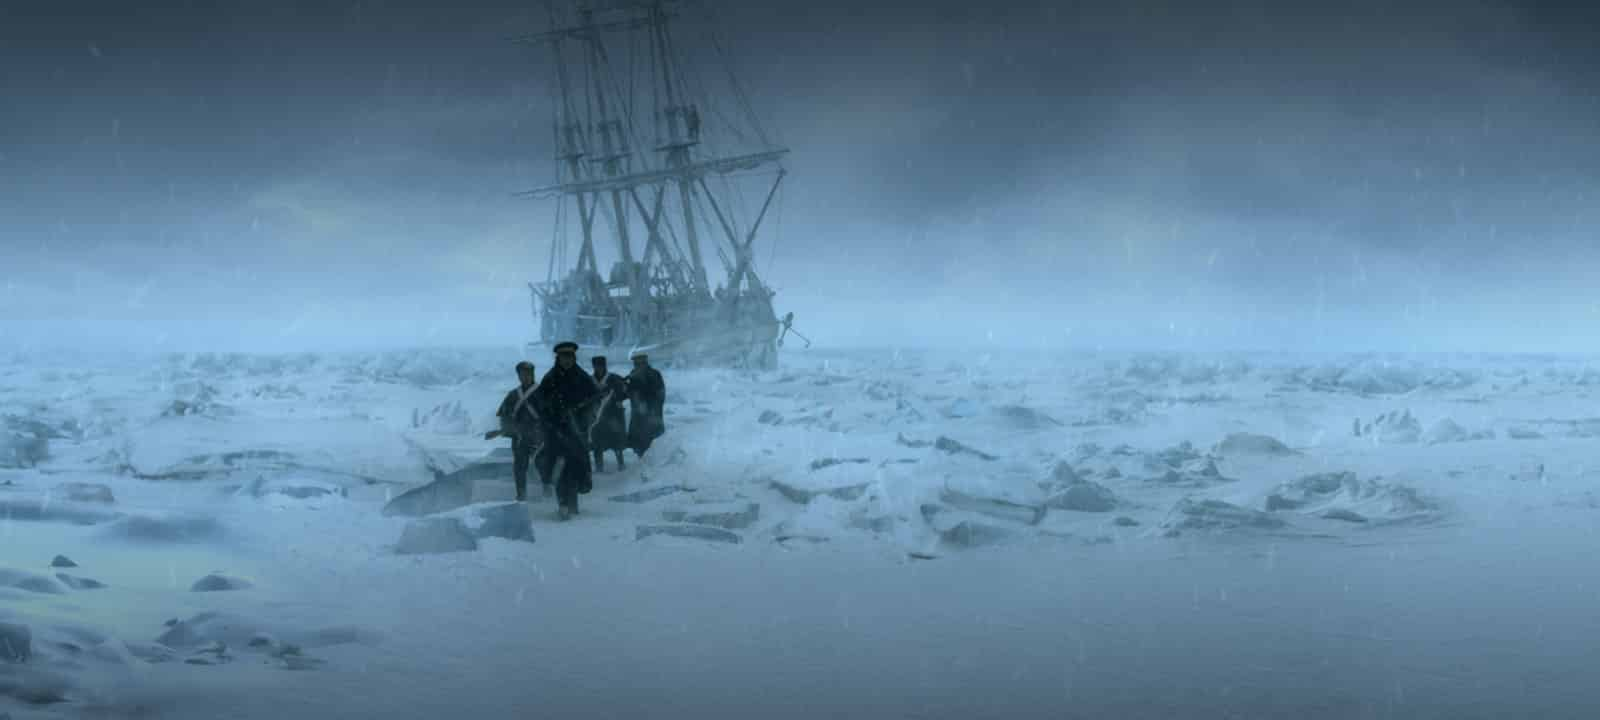 The Terror, Cinematographe.it